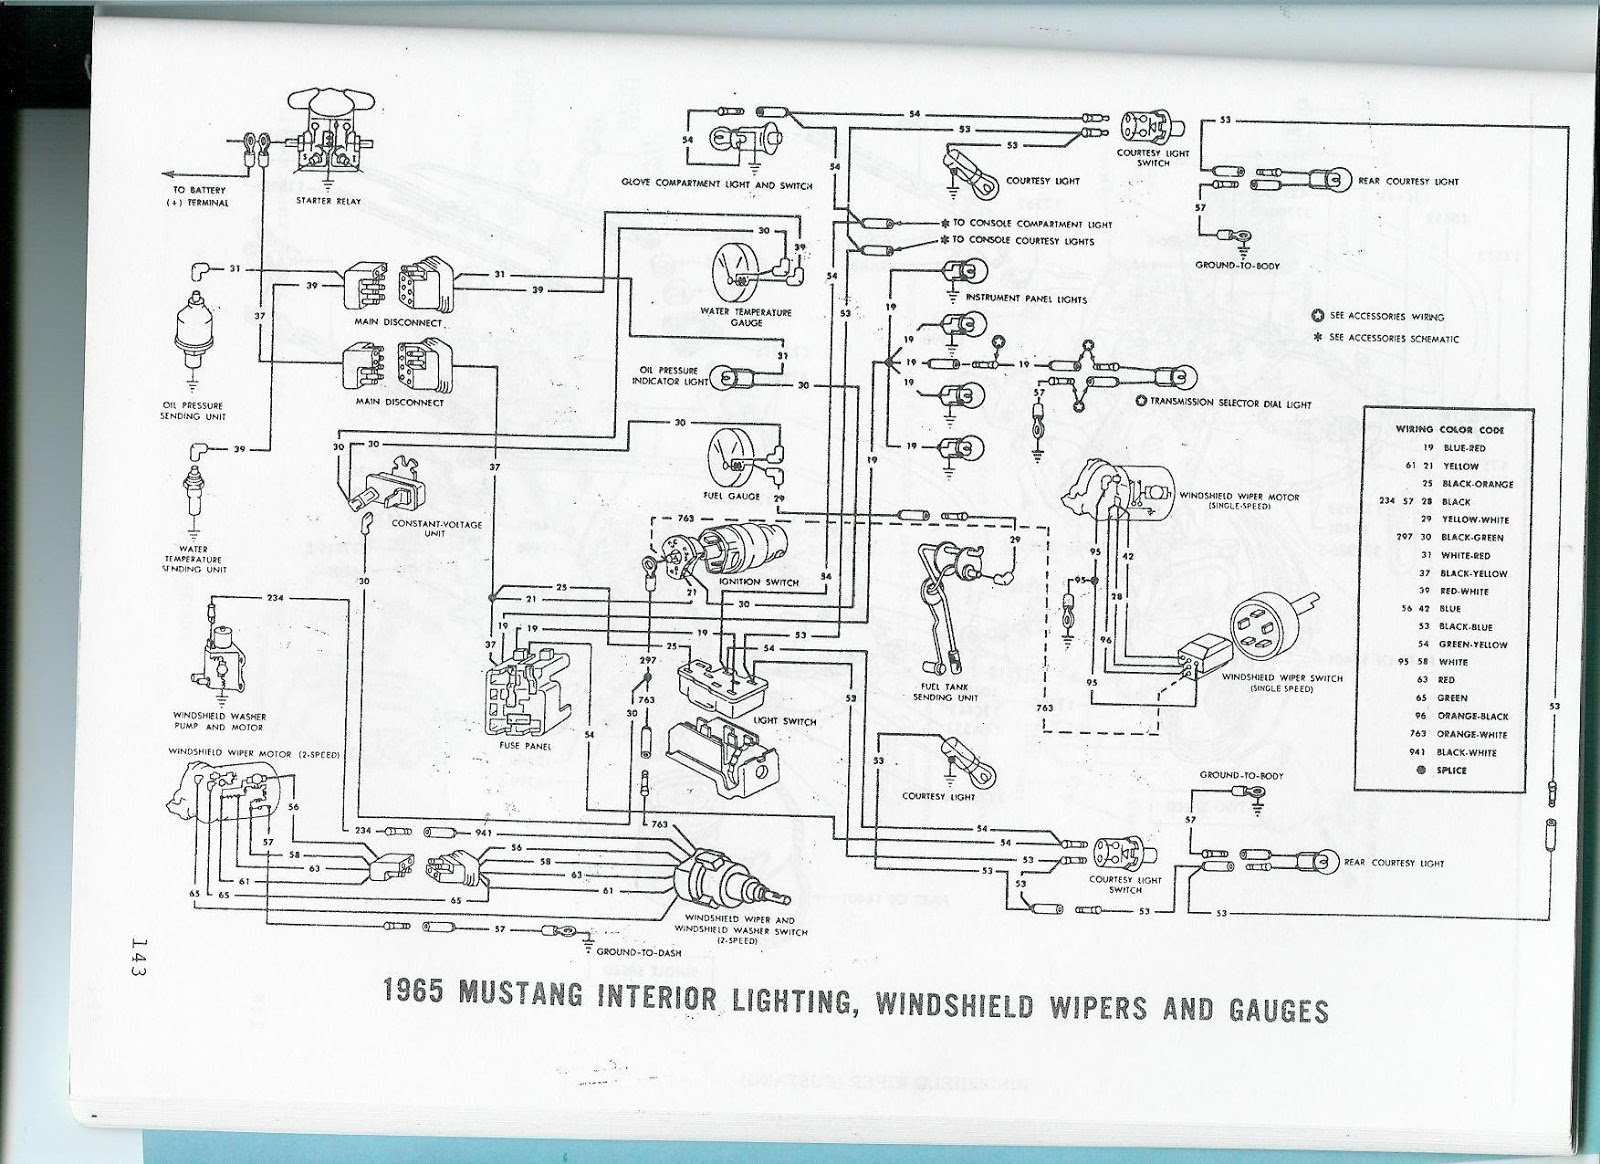 Chevelle Fuse Box | Wiring Liry on 67 chevelle horn diagram, 1970 chevelle ss fender emblem location, 1970 chevelle fuel gauge wiring, 1970 chevelle carburetor, 1970 chevelle wiring harness, 1967 chevelle horn diagram, 1970 chevelle air conditioning, 1970 chevelle neutral safety switch, 1970 chevelle air cleaner, chevelle ac diagram, 1970 chevelle wiring blueprints, 1970 chevelle oil sending unit, 1970 chevelle alternator, 1970 chevelle crankshaft, 1970 chevelle transmission, 1970 chevelle lights, 1970 chevelle schematics, 1970 chevelle cowl induction relay location, 1970 chevelle clock, 1970 chevelle tires,